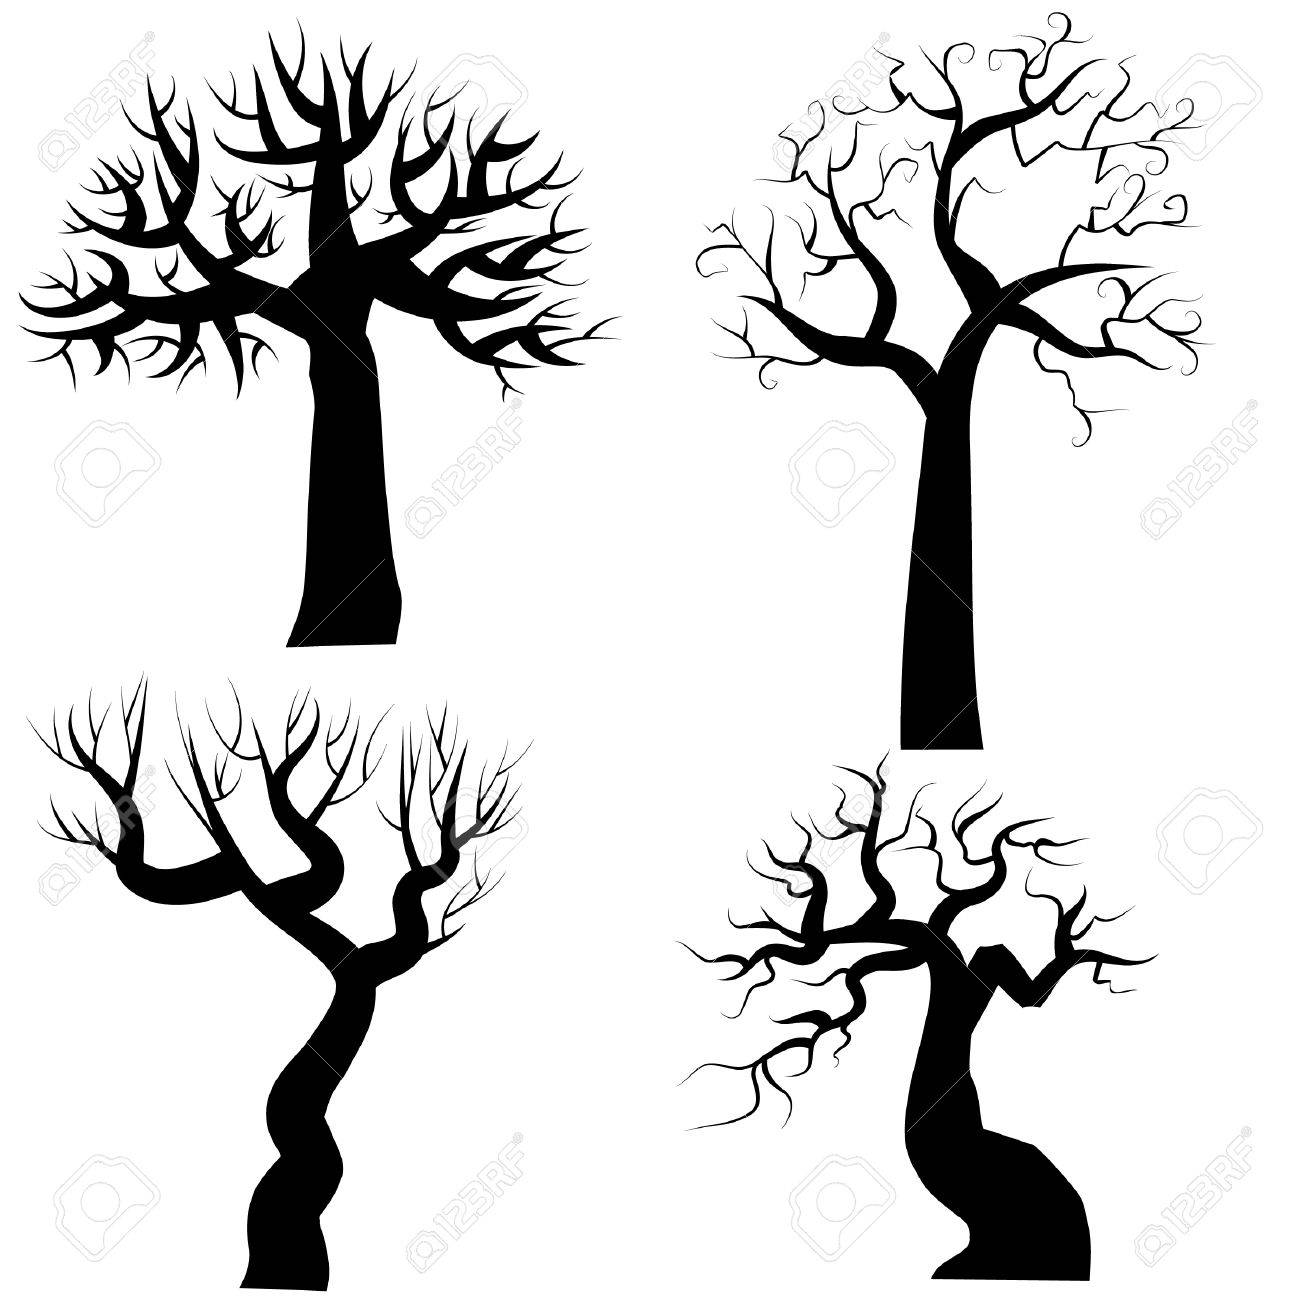 silhouettes of spooky halloween trees royalty free cliparts vectors